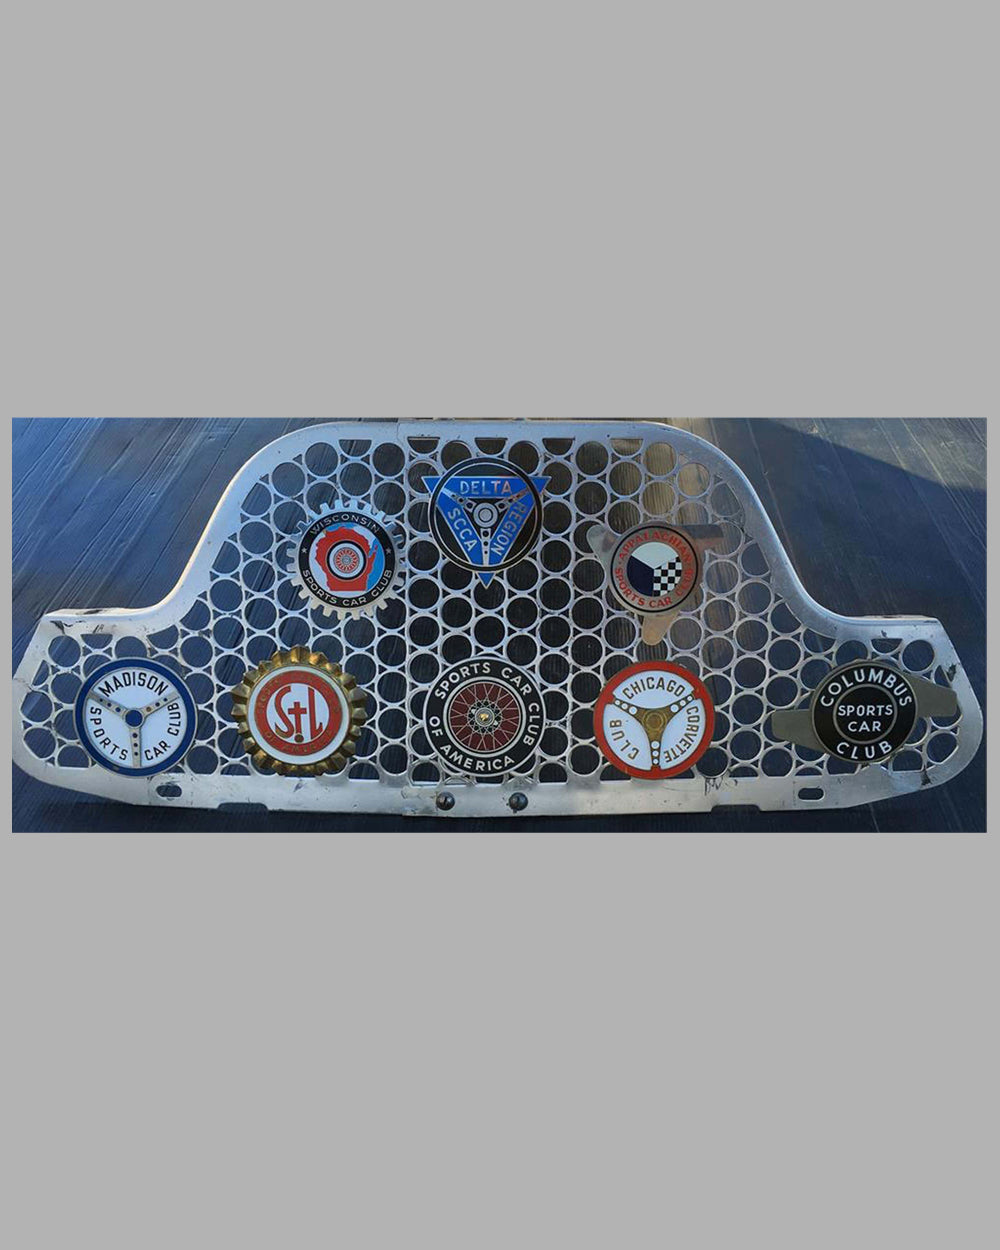 Collection of 8 U.S. Sports car club badges from the 1950's and 1960's